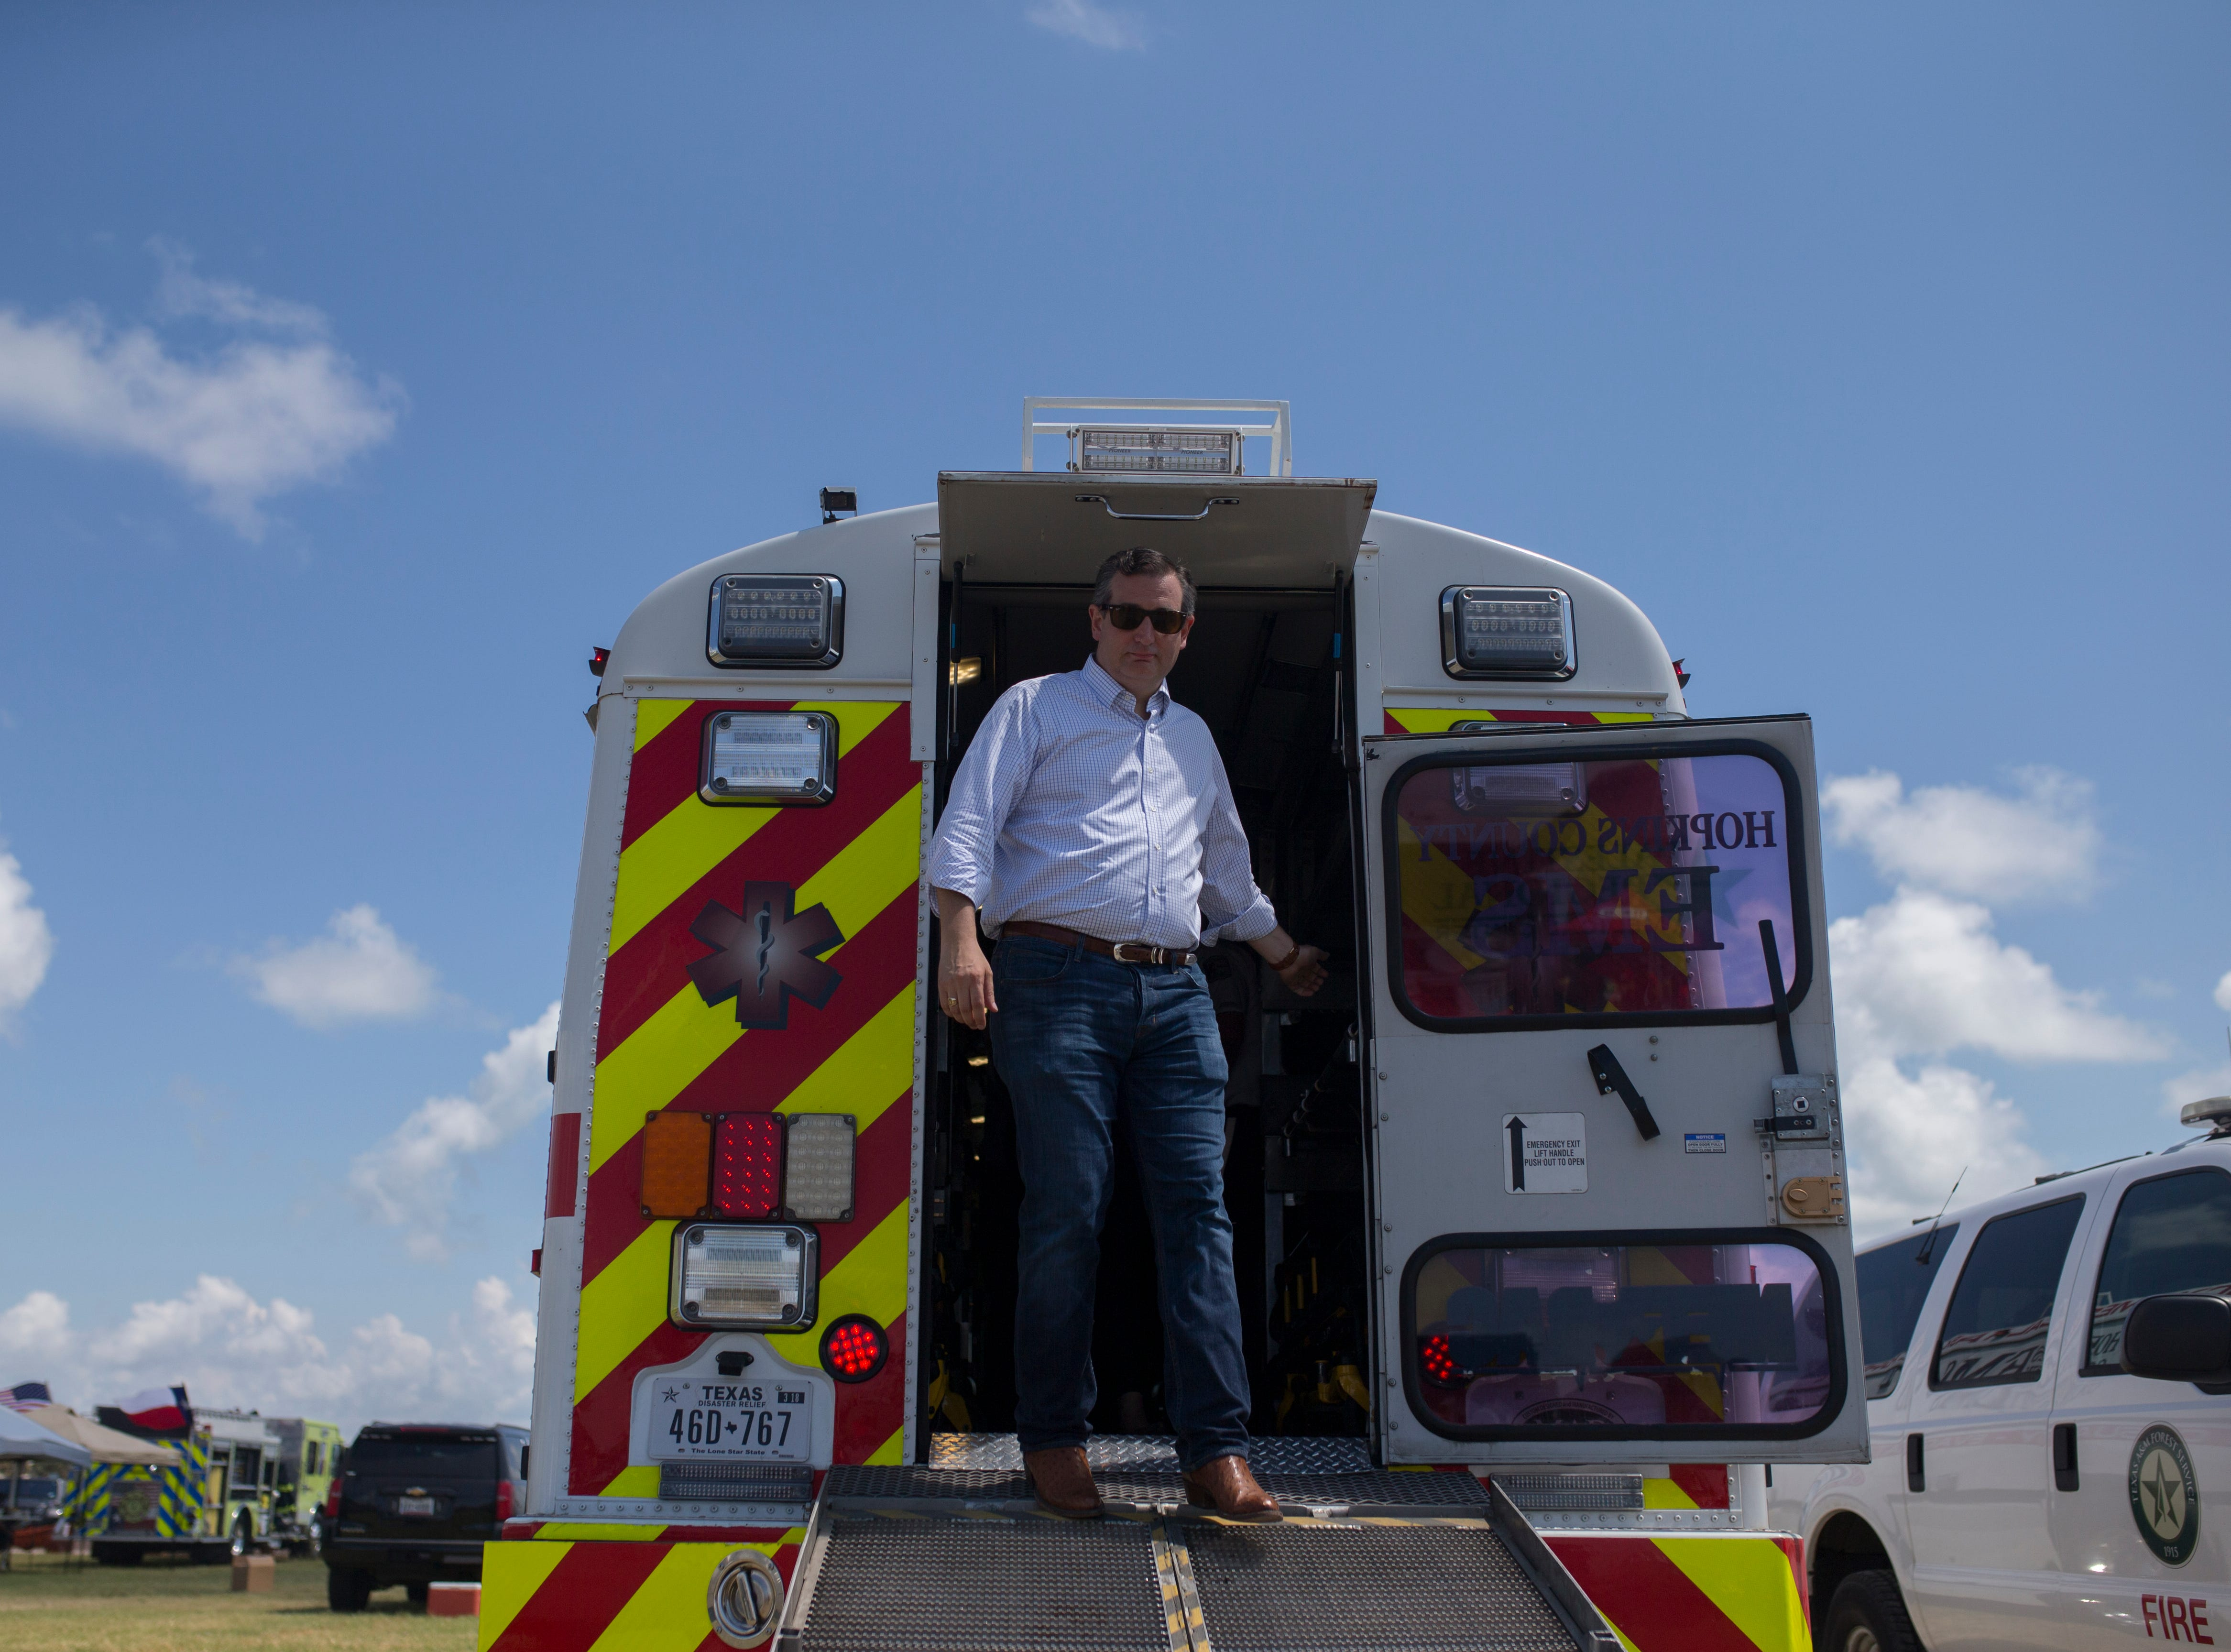 U.S. Sen. Ted Cruz tours a bus during a remembrance ceremony for the anniversary of Hurricane Harvey and to honor first responders on Saturday, Aug. 25, 2018 in Rockport.